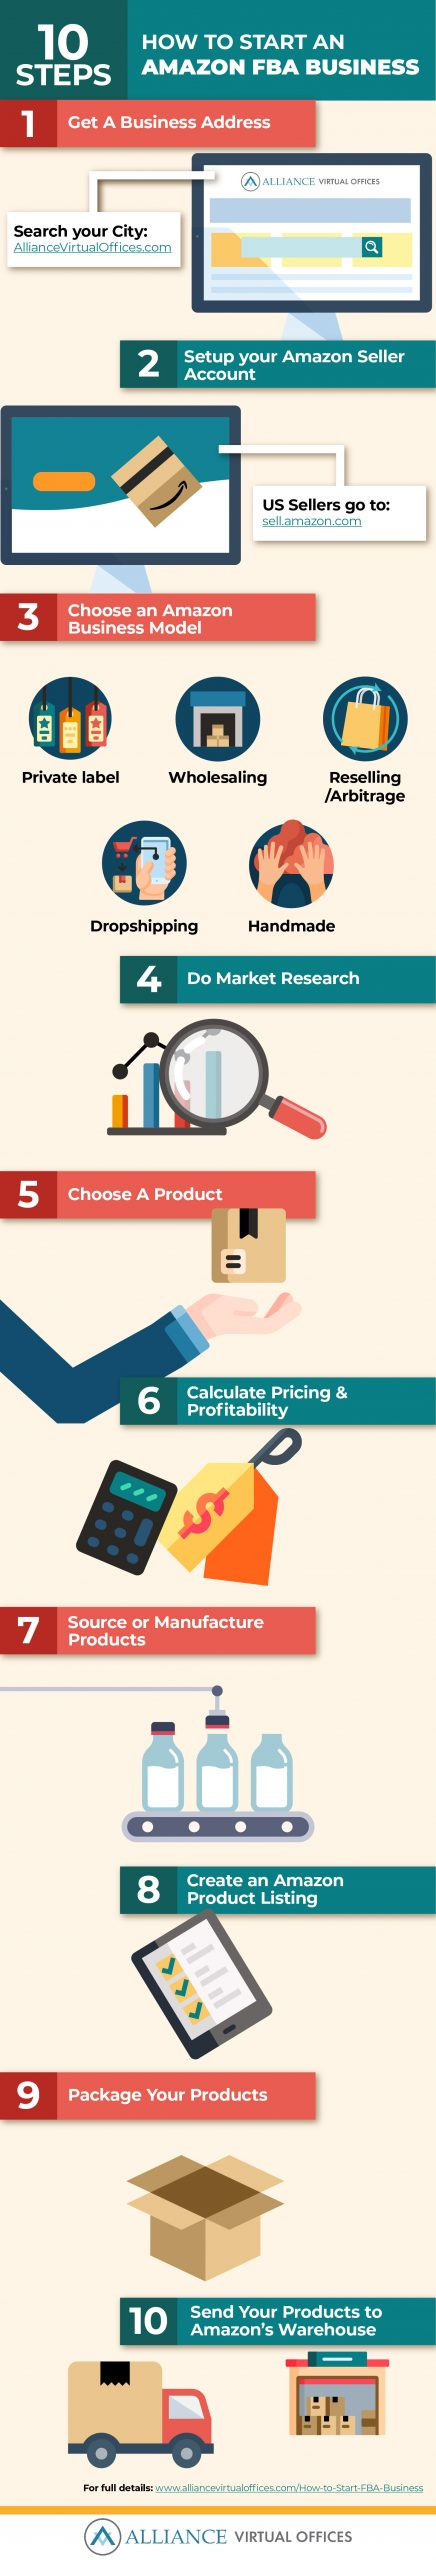 how to start an amazon fba business steps - infographic